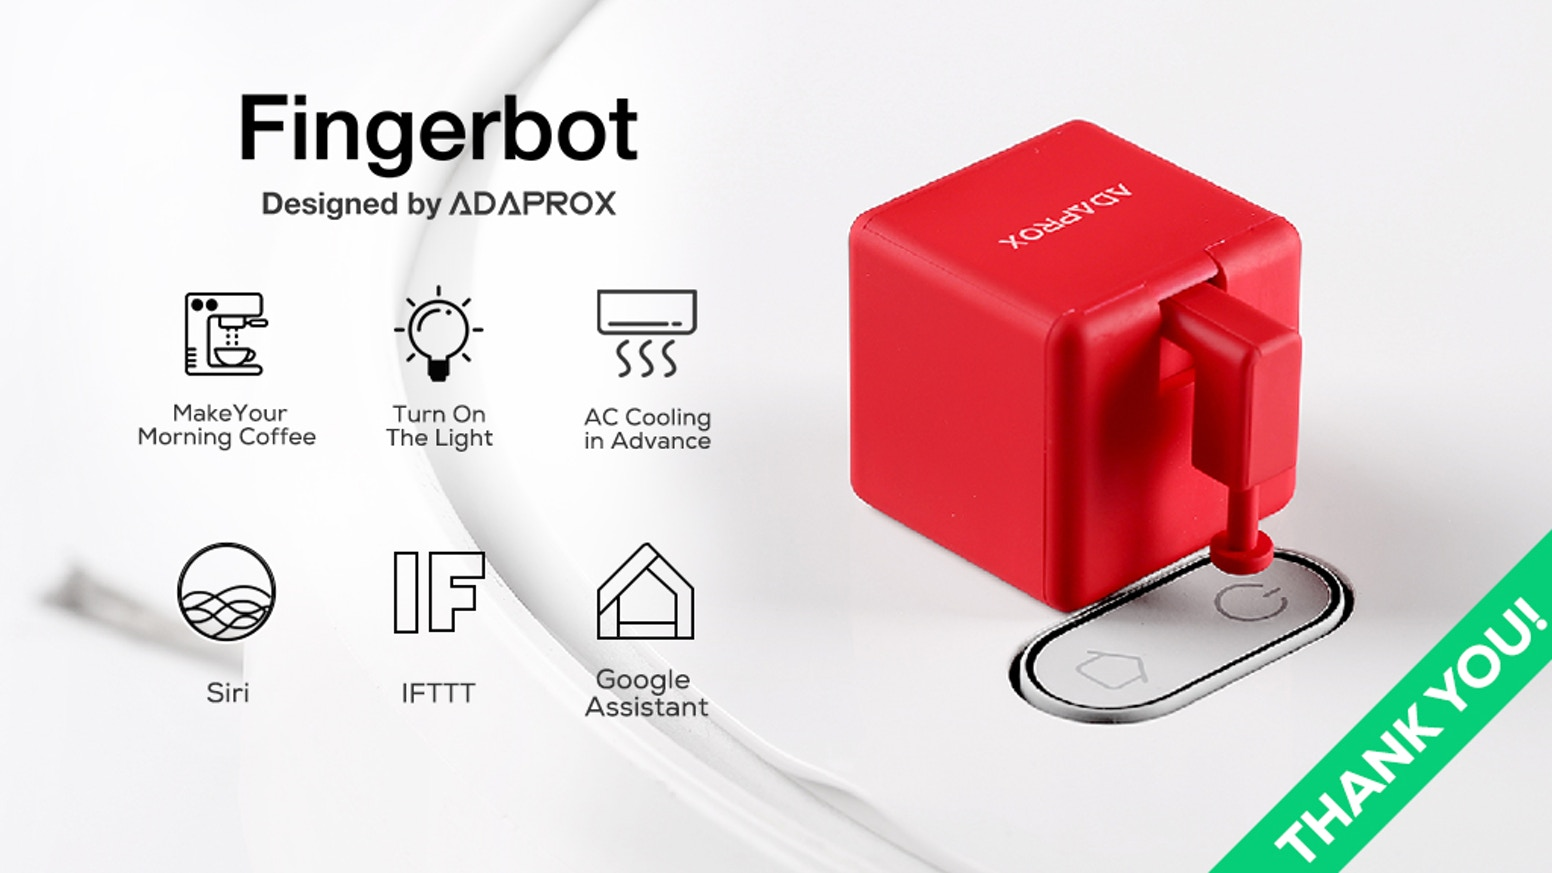 Make all traditional devices remotely controlled. Supports Alexa, Google Home, Siri and more. A simple step towards a smarter home.